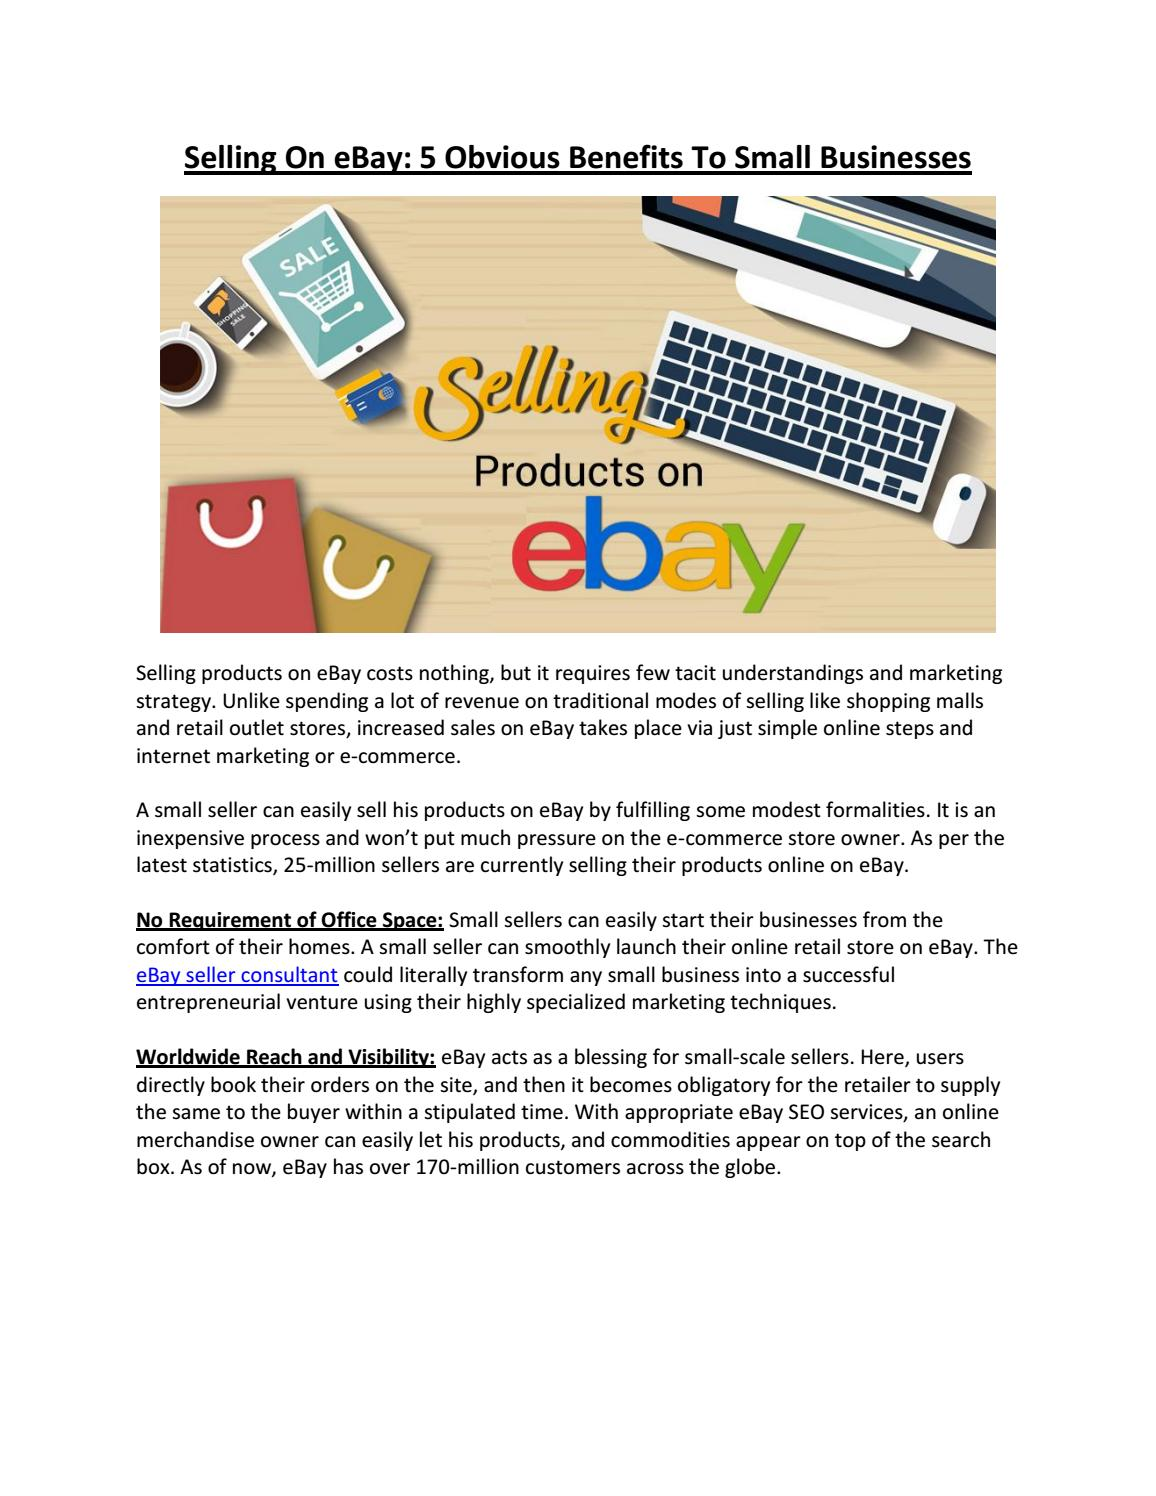 Selling On Ebay 5 Obvious Benefits To Small Businesses By Estore Factory Issuu